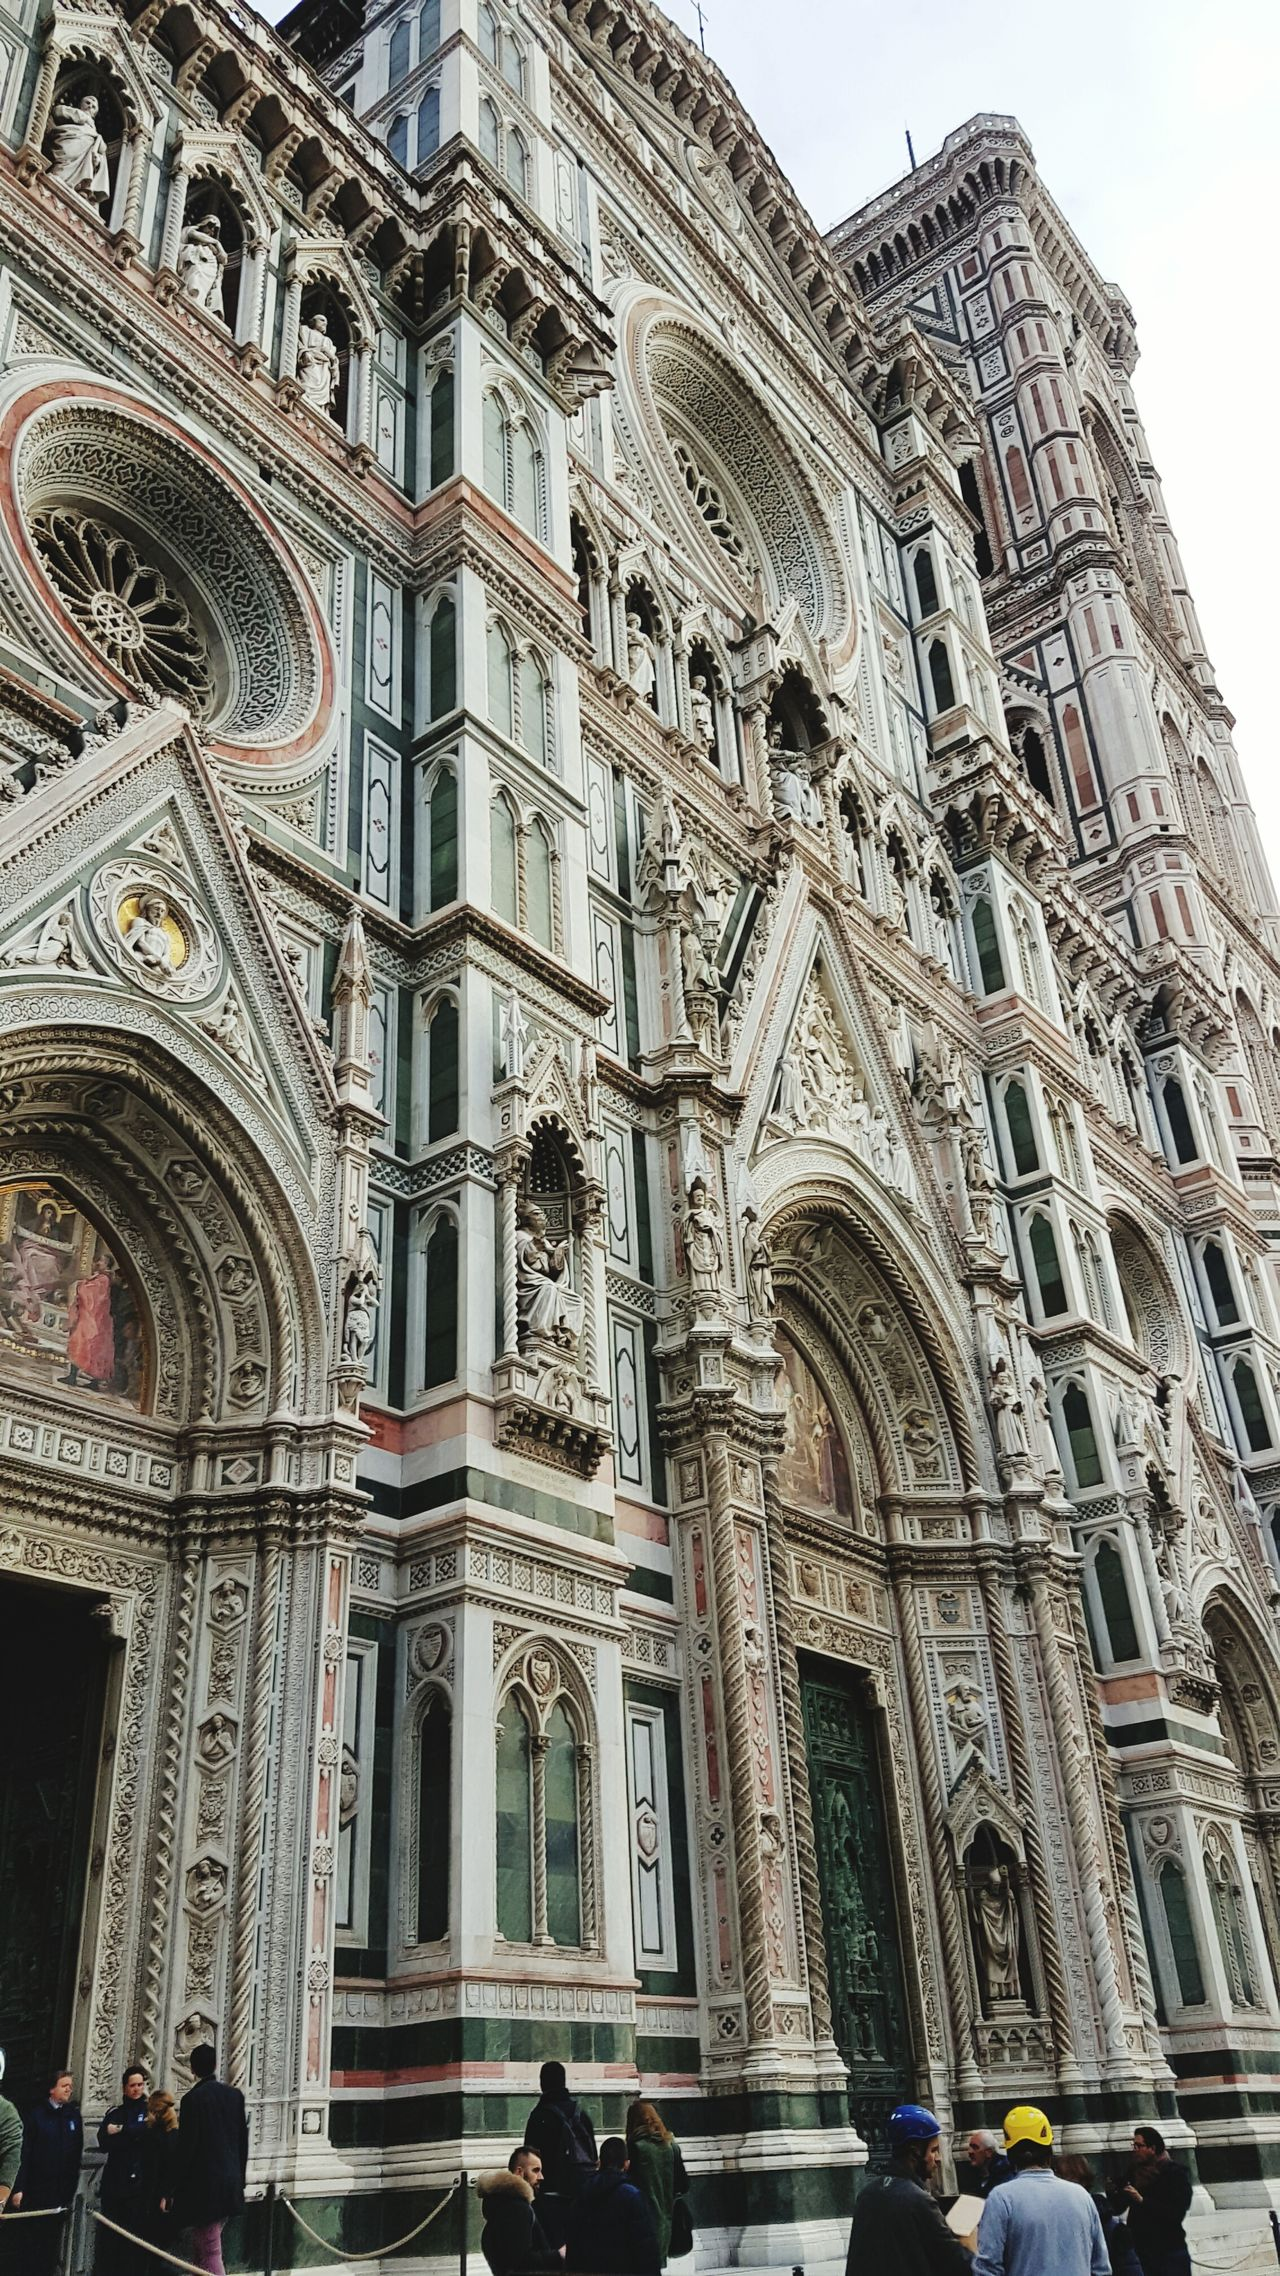 Church. Travel Destinations Tourism Place Of Worship Architecture Built Structure Tourist Religion Spirituality Building Exterior City Travel History Italy🇮🇹